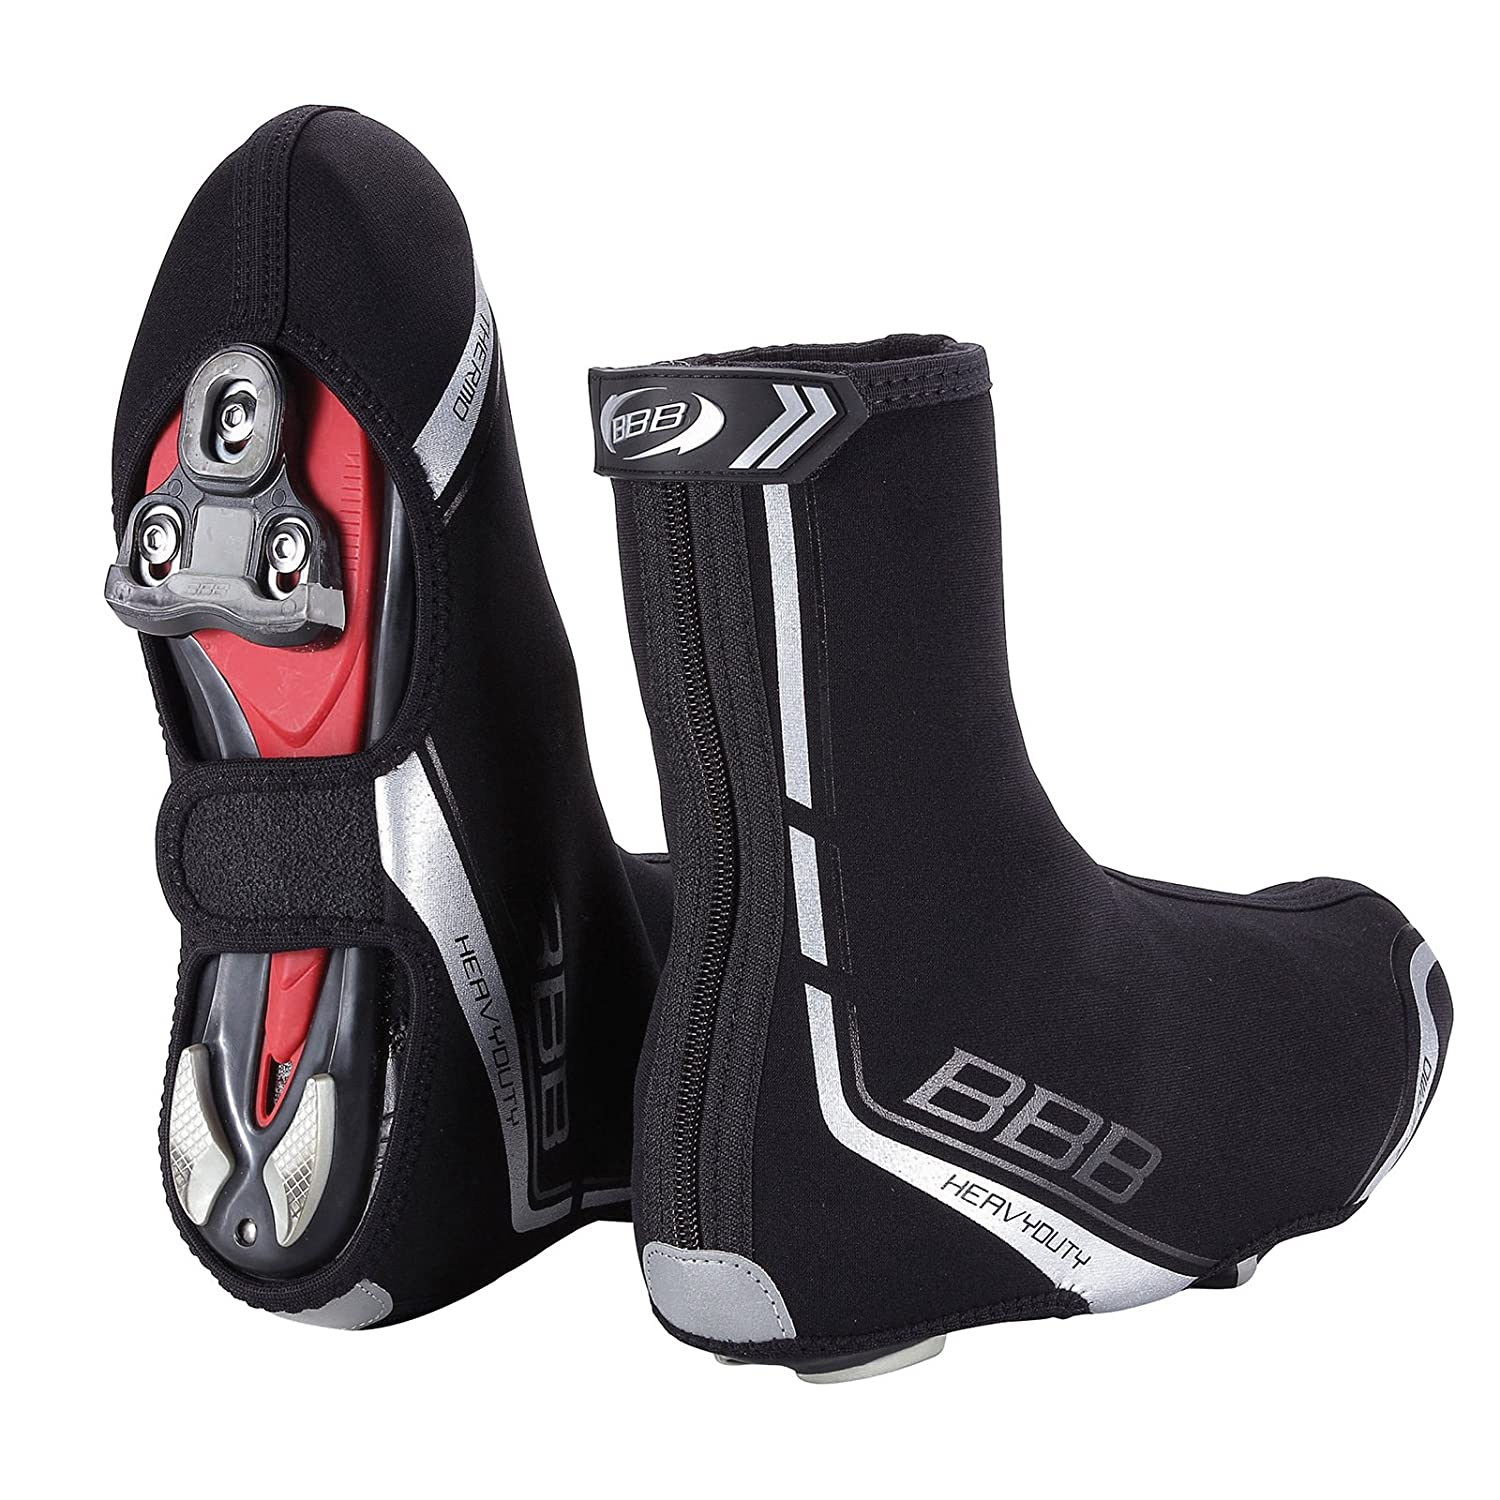 BBB Overshoes HeavyDuty OSS 2.989.730.250